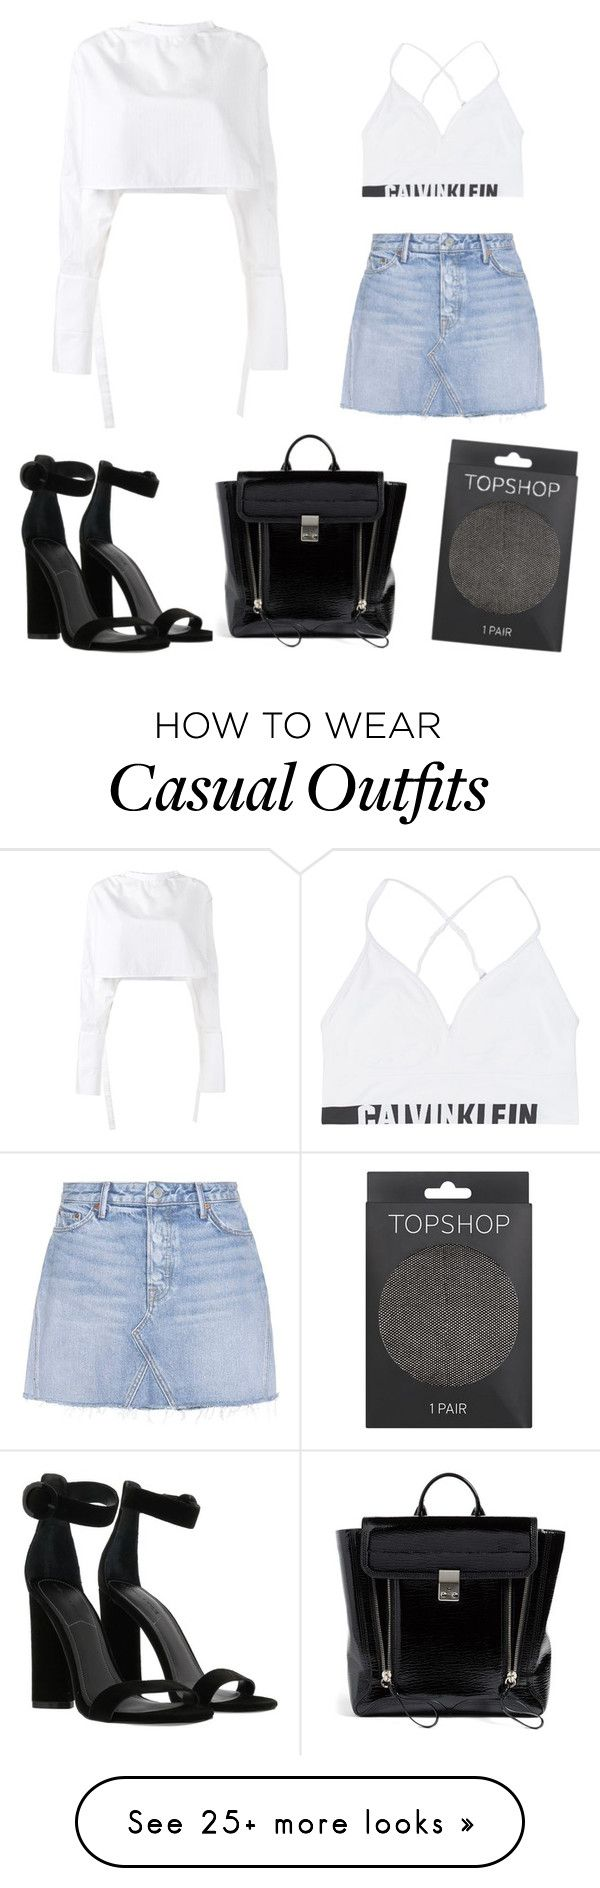 """Casual"" by mercymercier on Polyvore featuring E L L E R Y, GRLFRND, Calvin Klein Jeans, Kendall + Kylie, 3.1 Phillip Lim and Topshop"